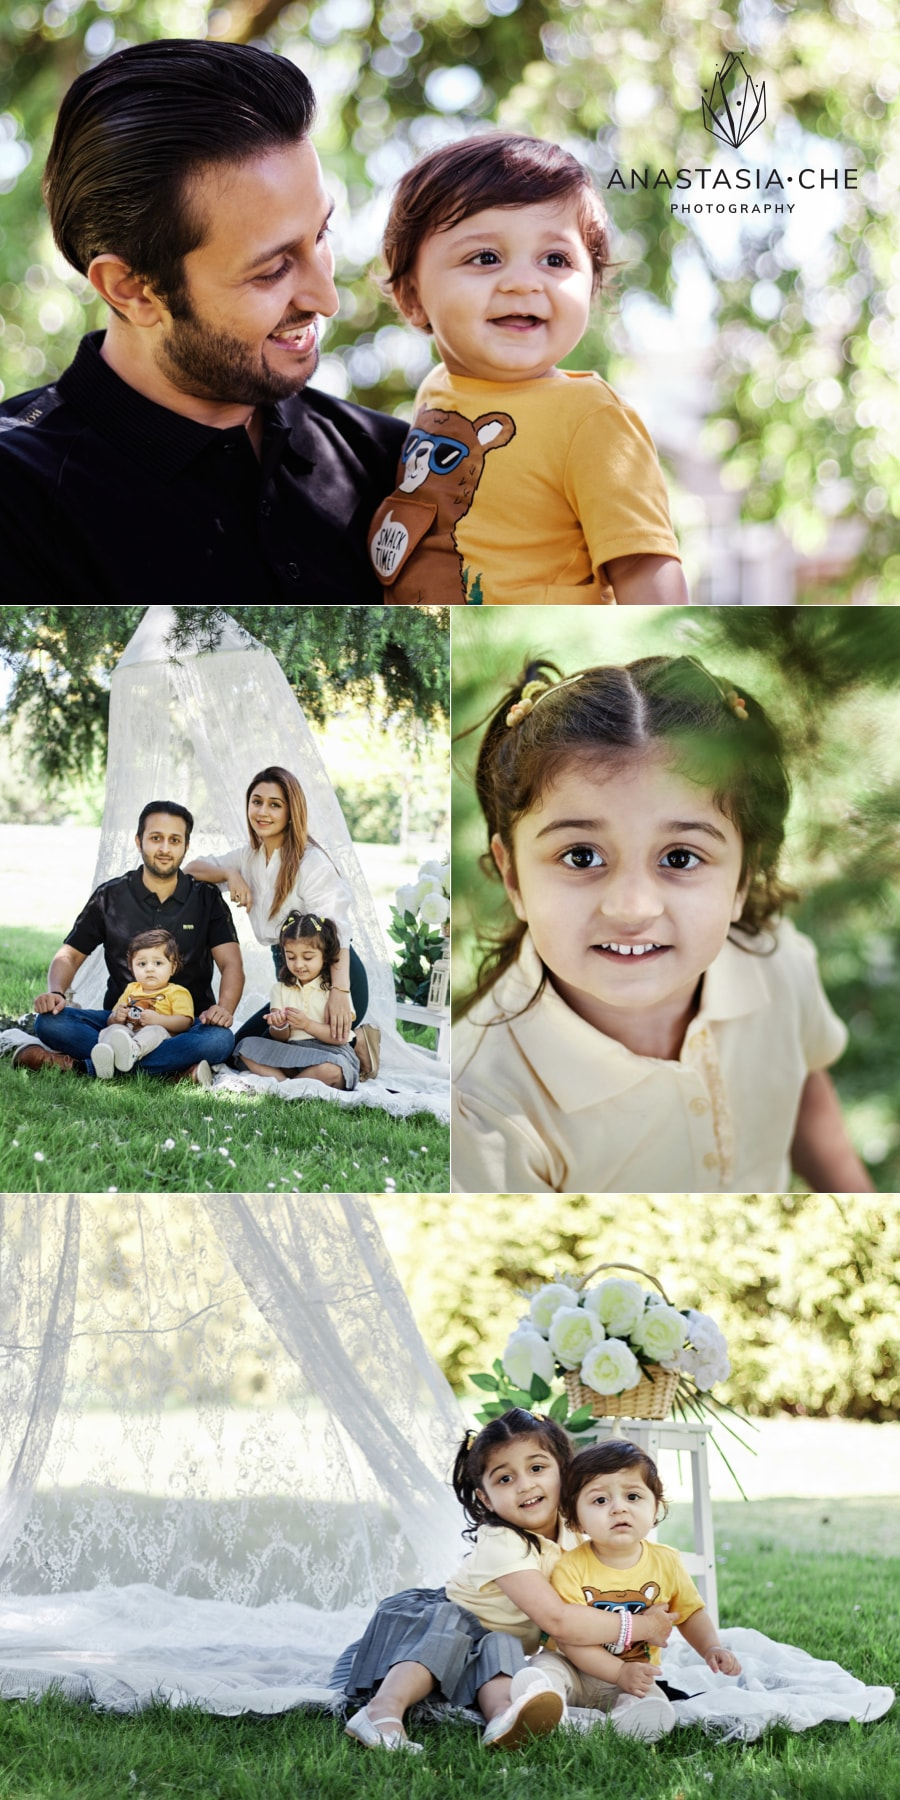 Mini-session for a family of four at Queen Elizabeth Park. See the result on the link! #family #familyminis #familyphoto #vancouverphotographer